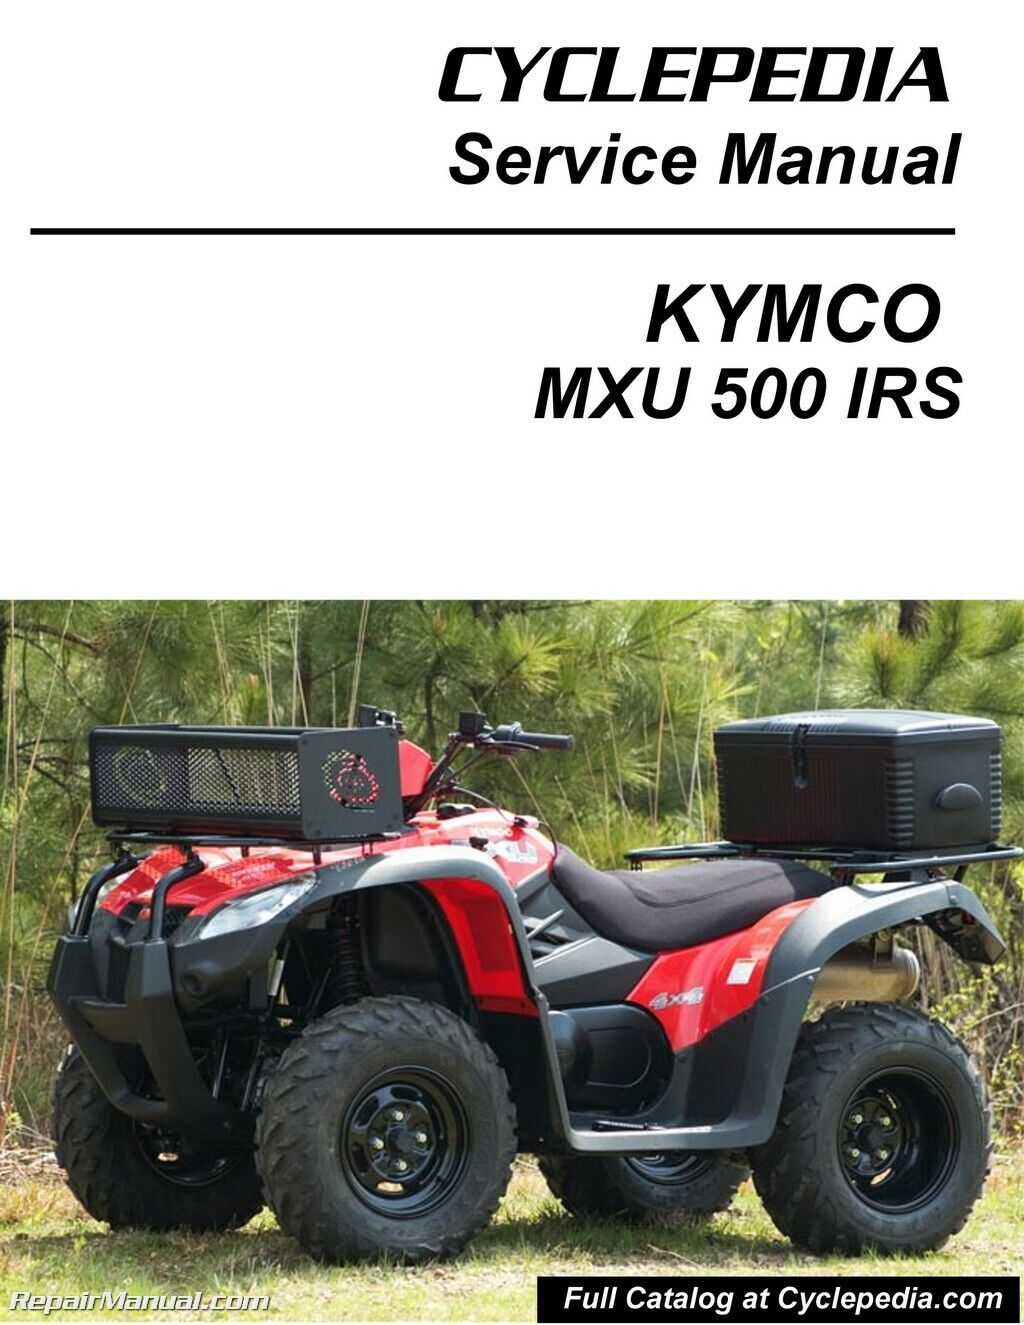 KYMCO MXU 500 2010 - 2012 ATV Service Manual Printed by Cyclepedia 1 of  1Only 4 available ...